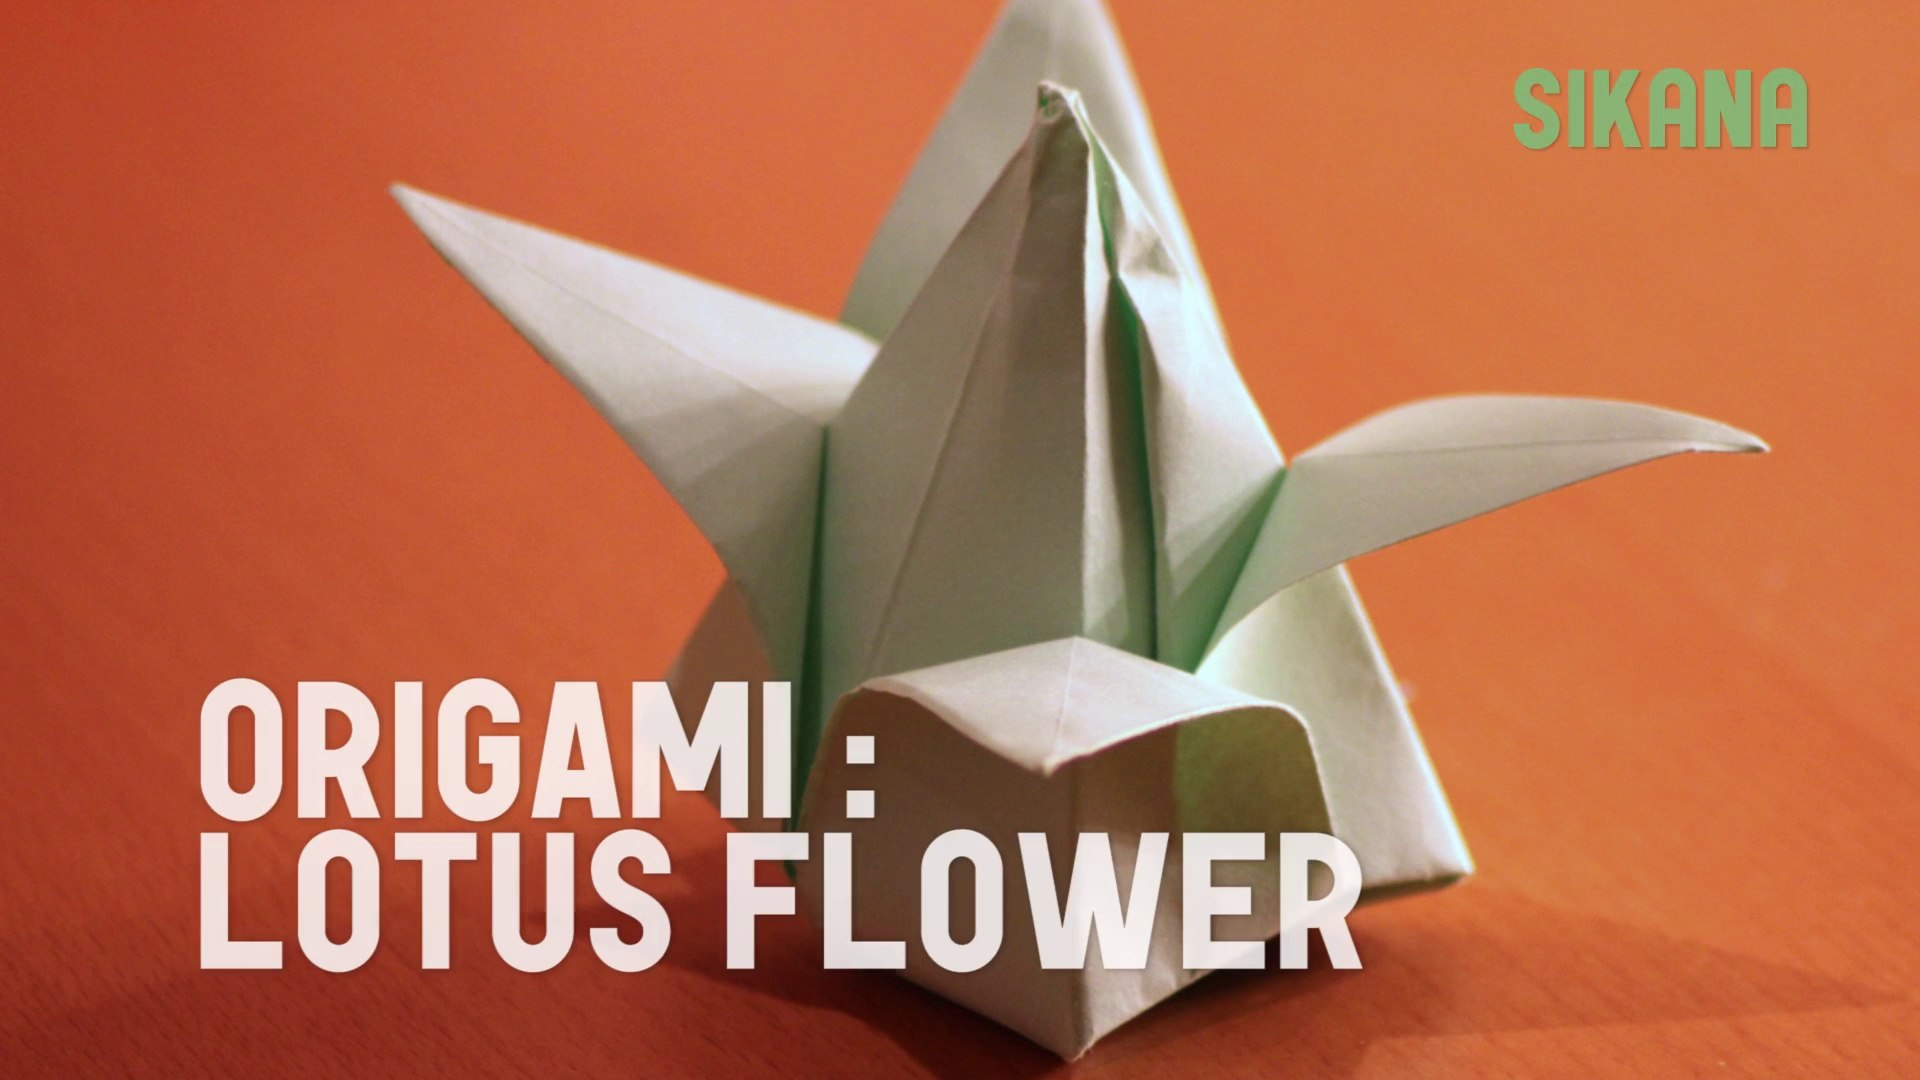 Origami Lotus Flower Tutorial | Origami lotus flower, Lotus ... | 1080x1920